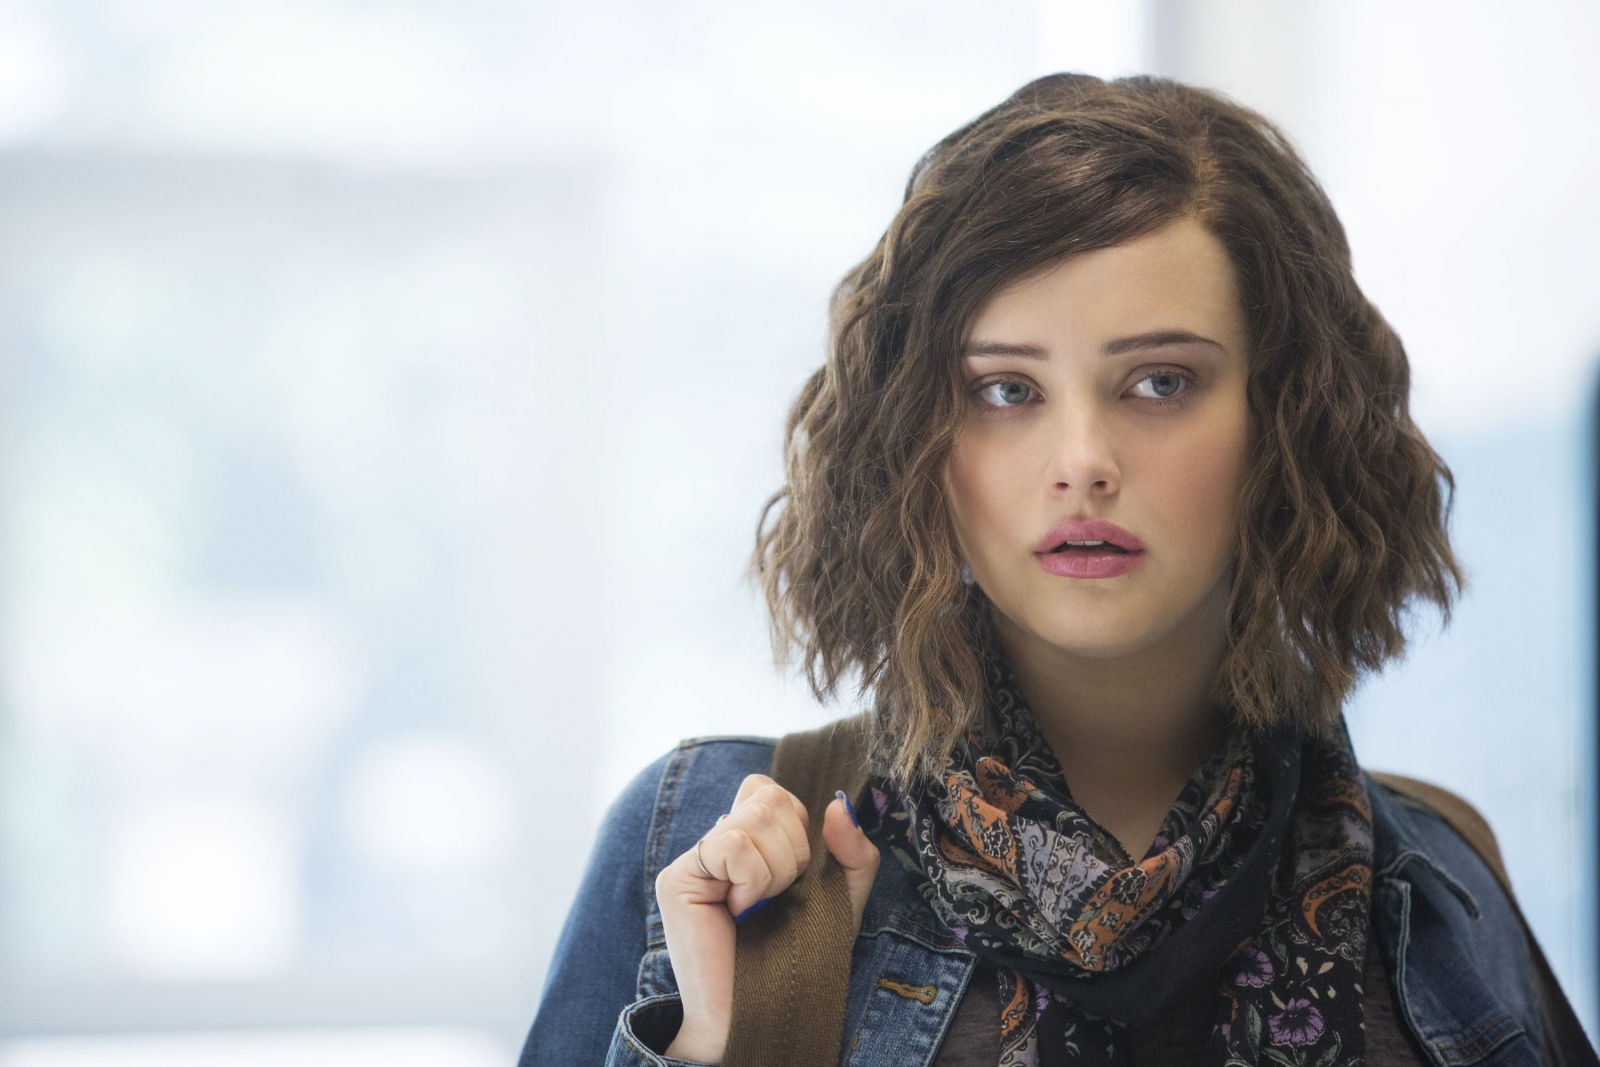 Is '13 Reasons Why' Helping Kids Kill Themselves?